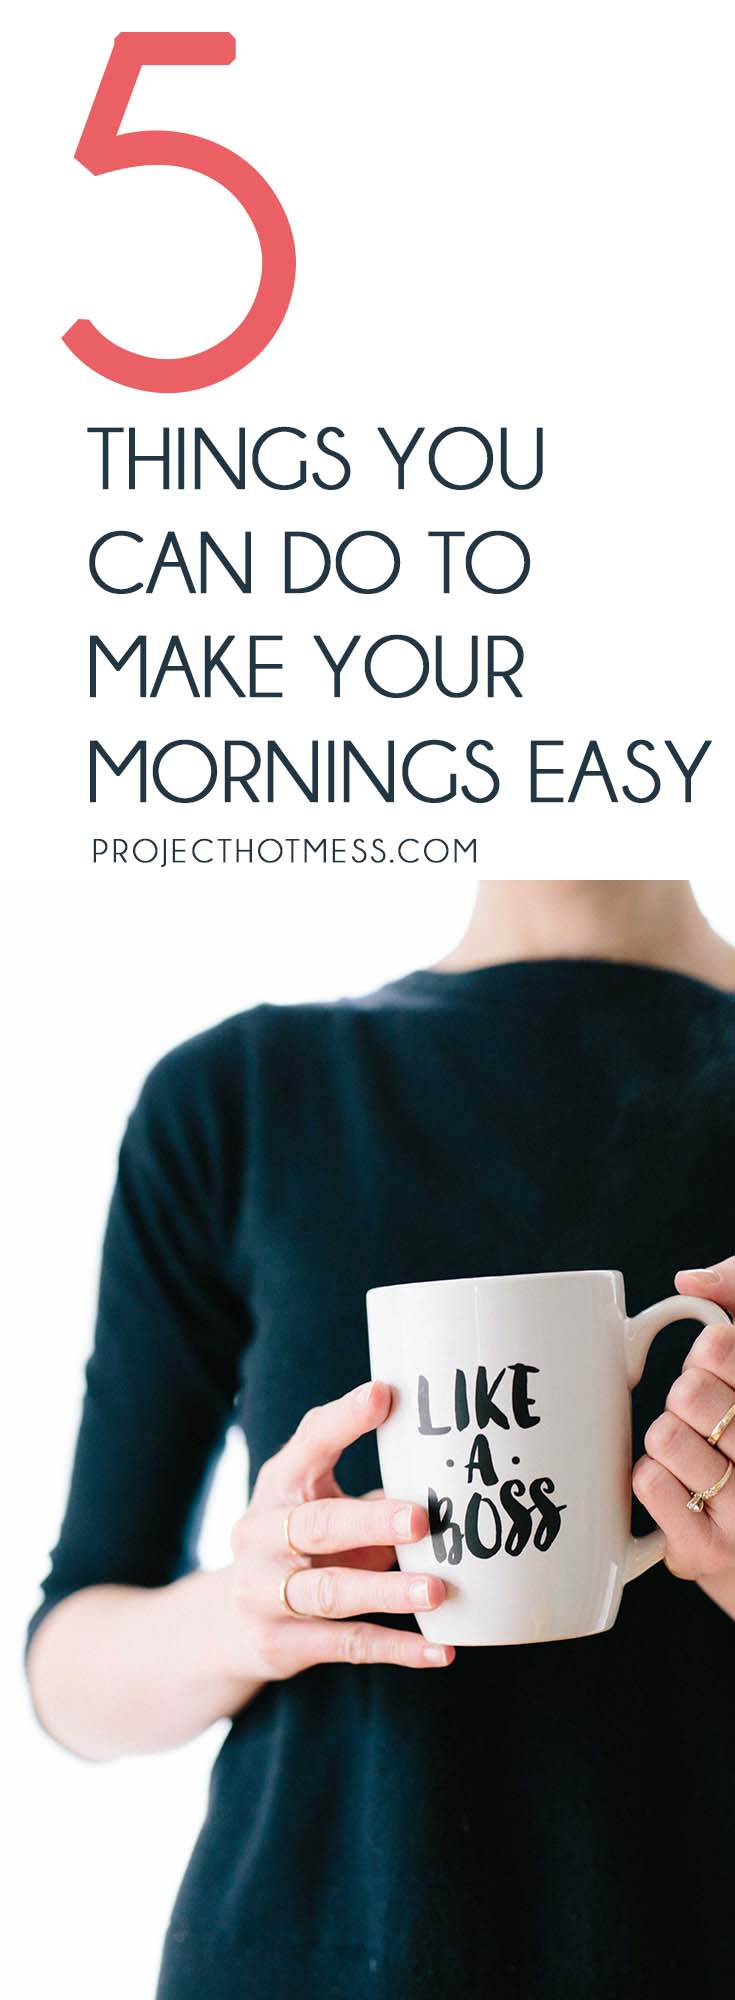 Mornings are crazy and full on so anything you can do to make your mornings easier is going to be a huge benefit. These 5 things can make mornings a breeze. #lifelessons #lifehacks